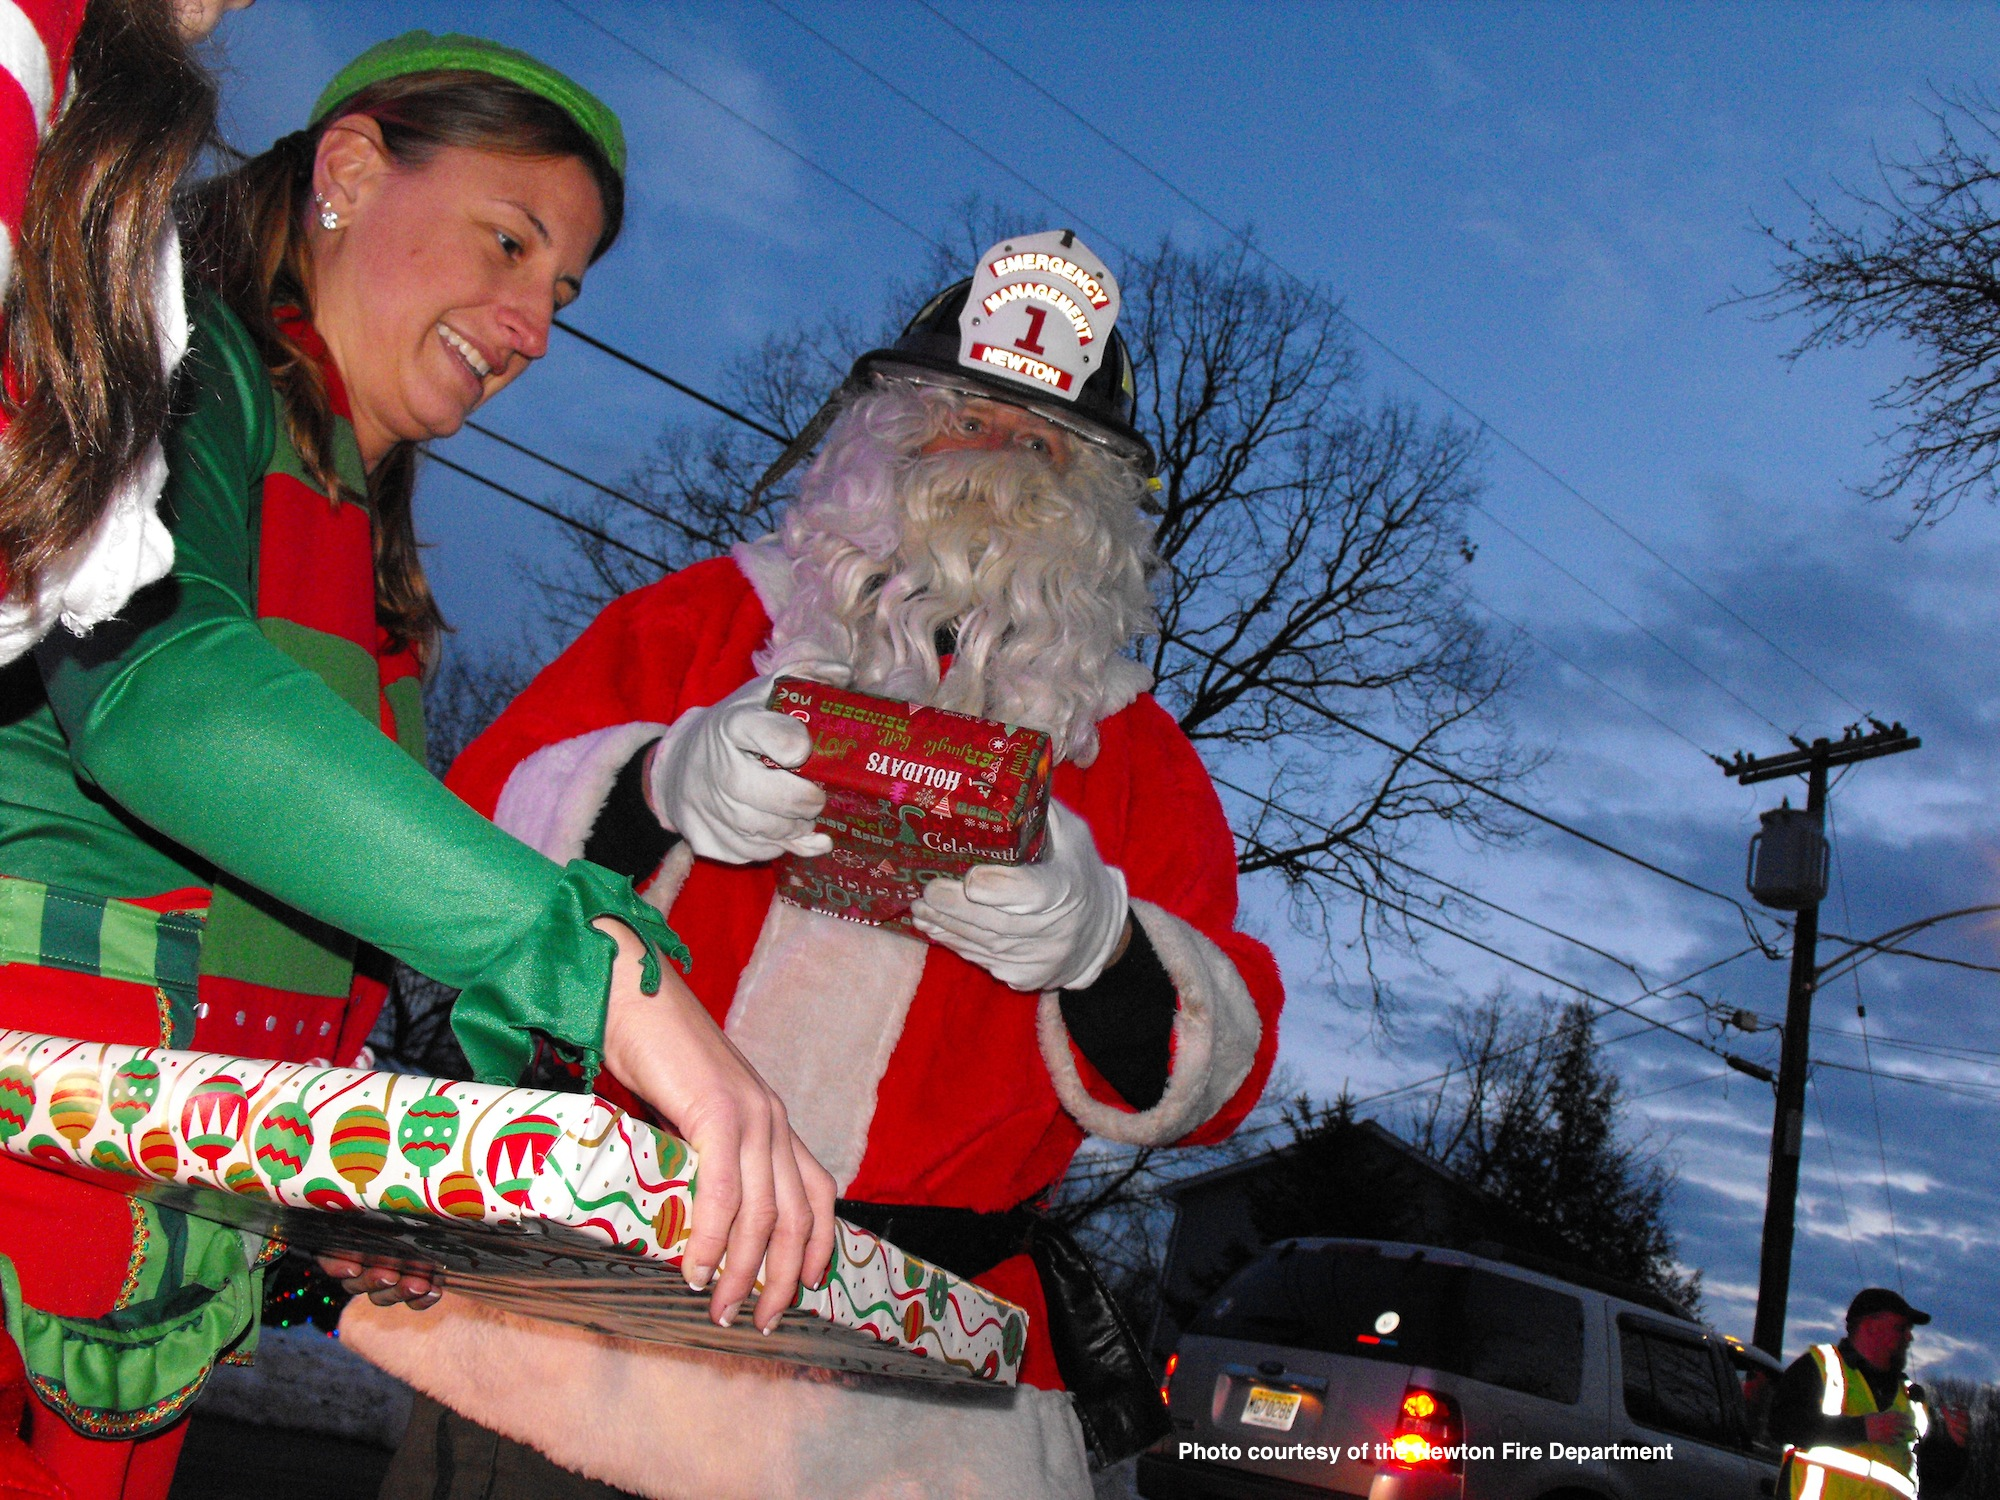 Dusk falls and work for Santa and his crew continues. Photo courtesy of the Newton Fire Department.